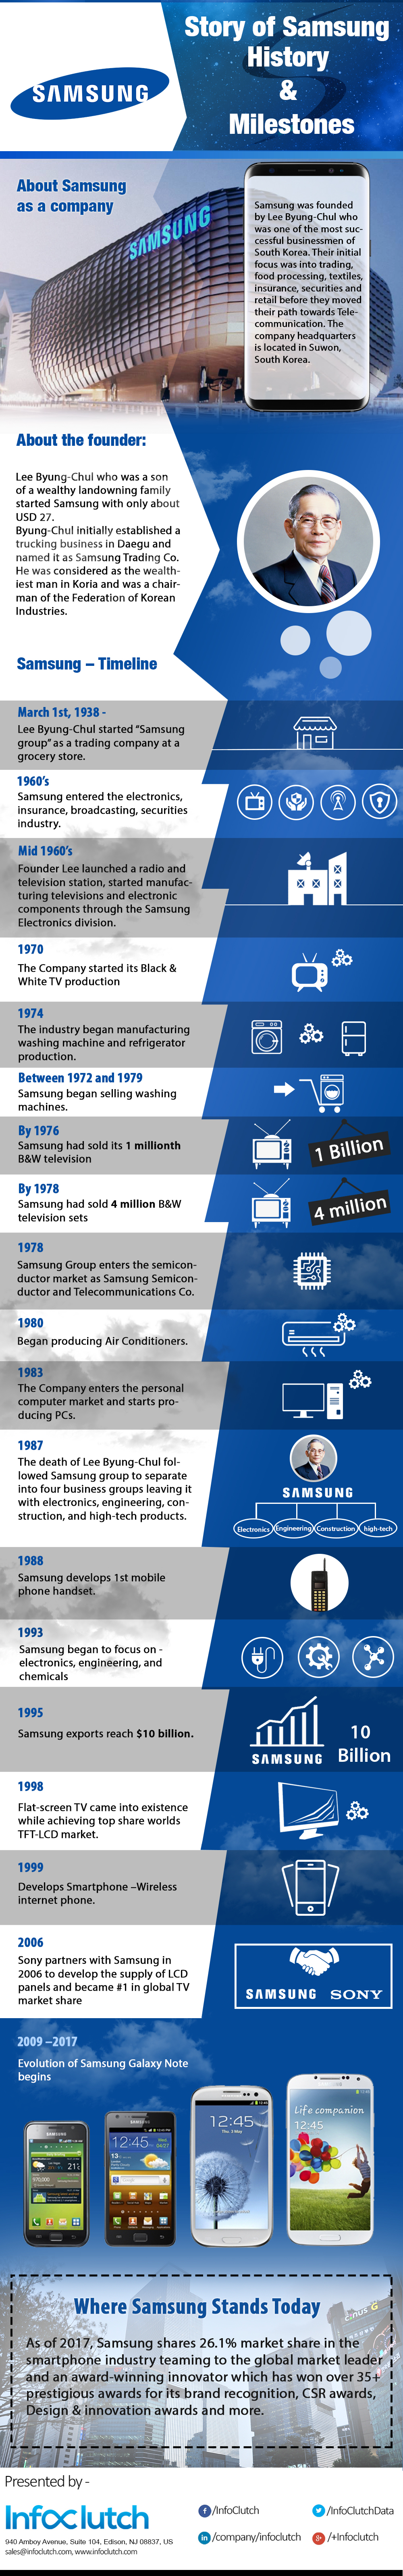 Story of Samsung: History and Milestones